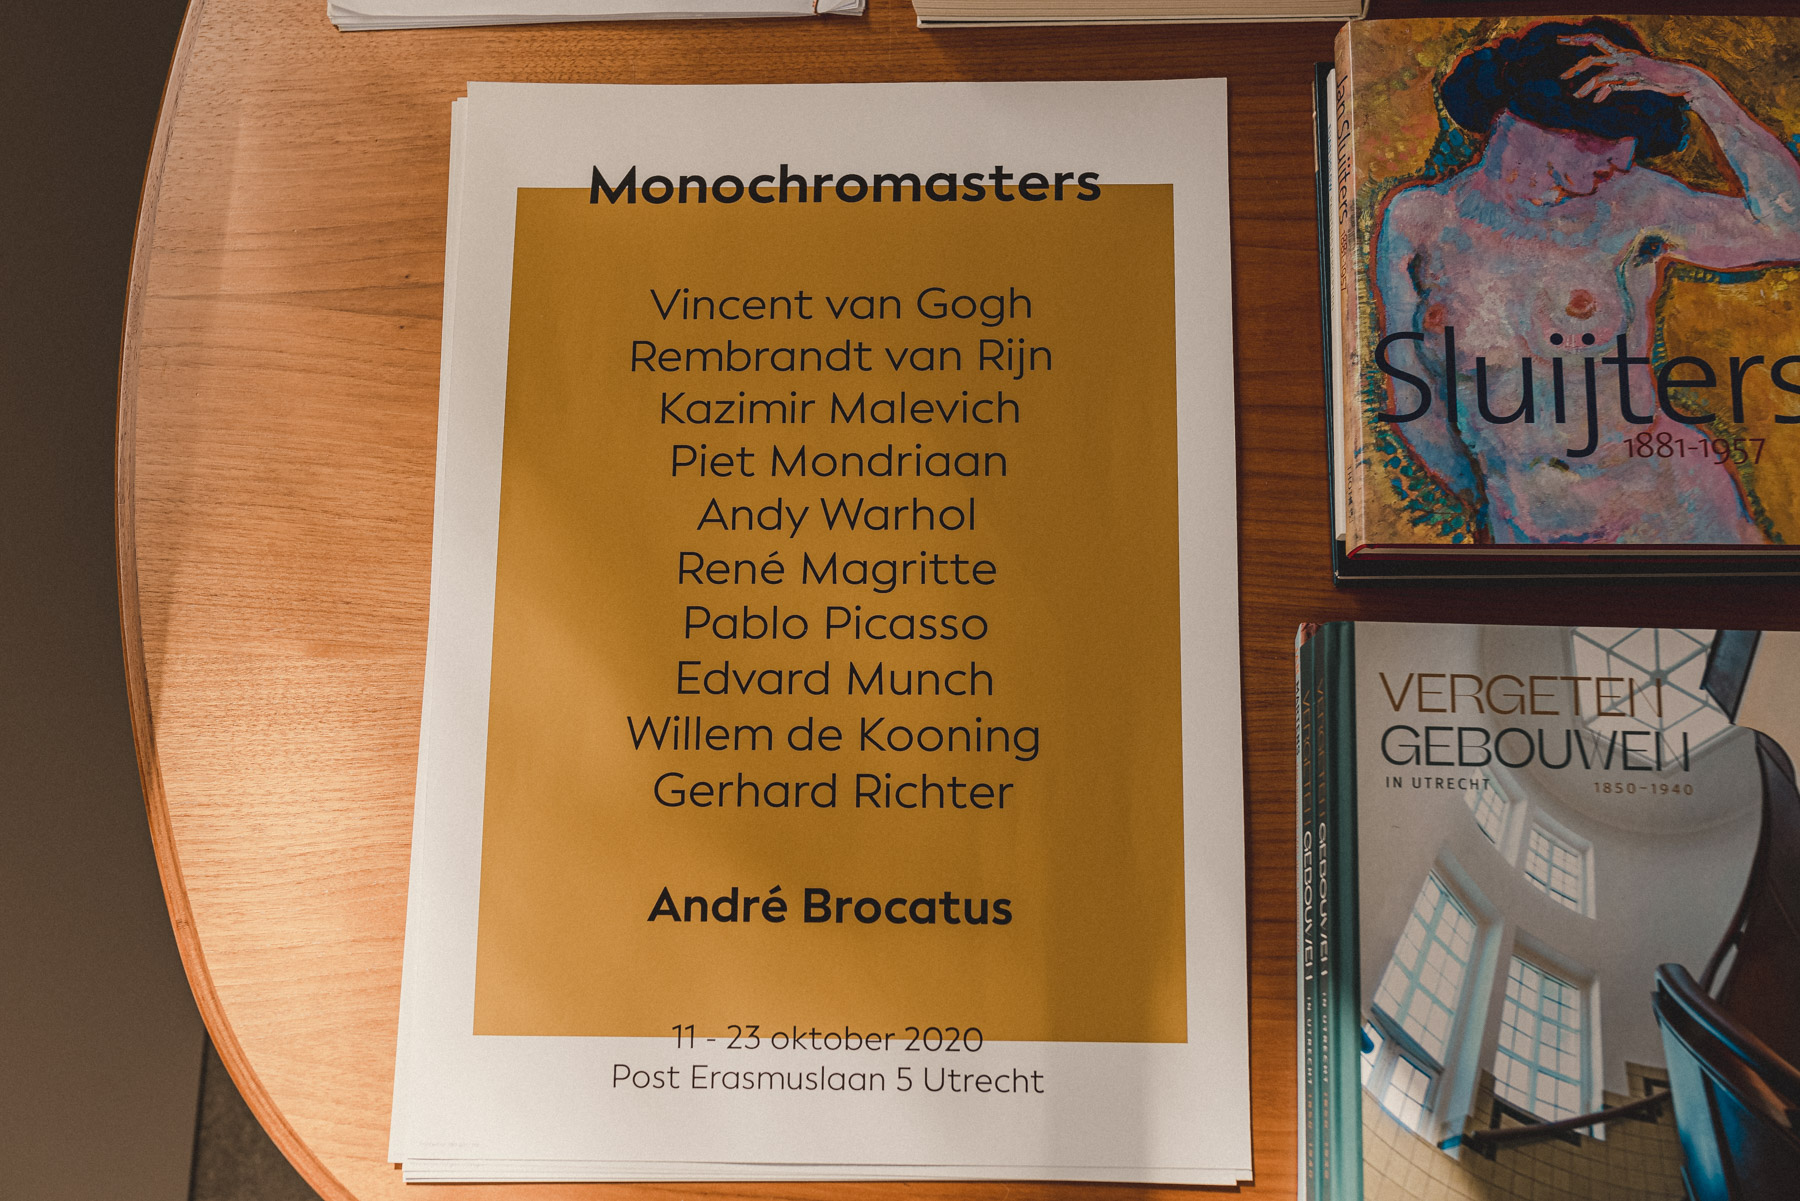 Poster of the Monochromasters expo 2020